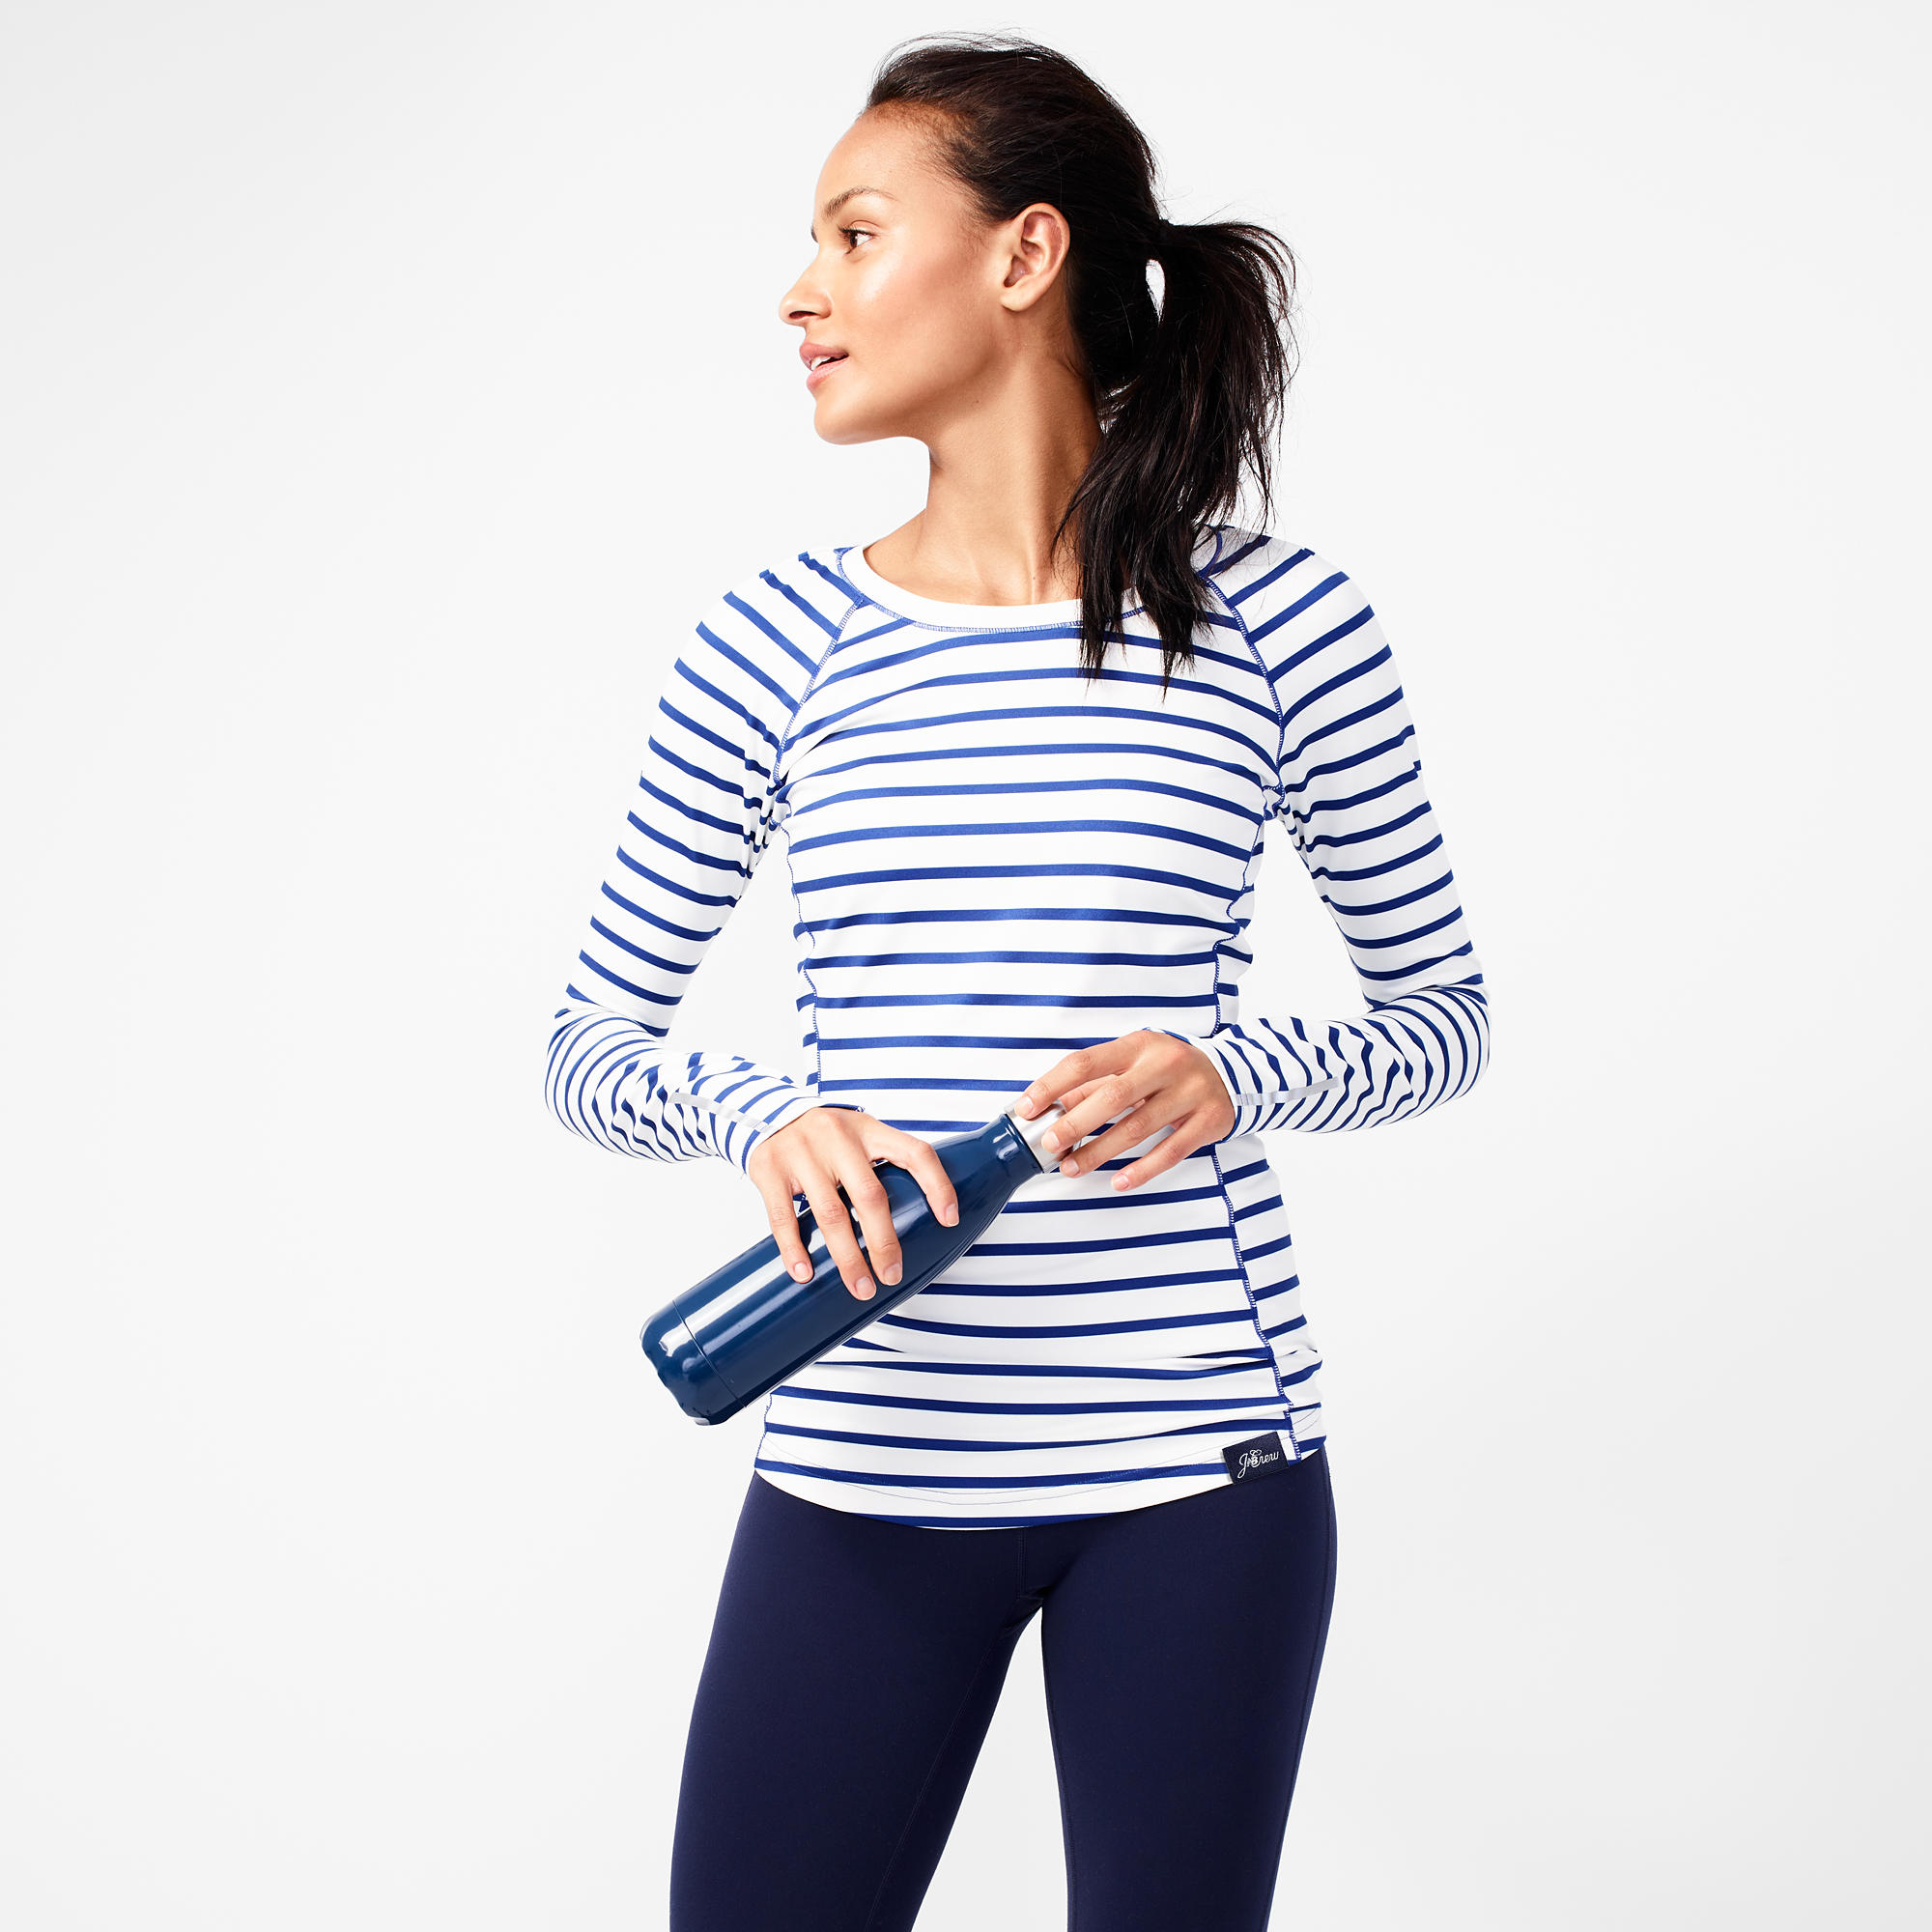 fce9f3dd0bbc3 J.Crew Launches Sport with New Balance - Katie Considers